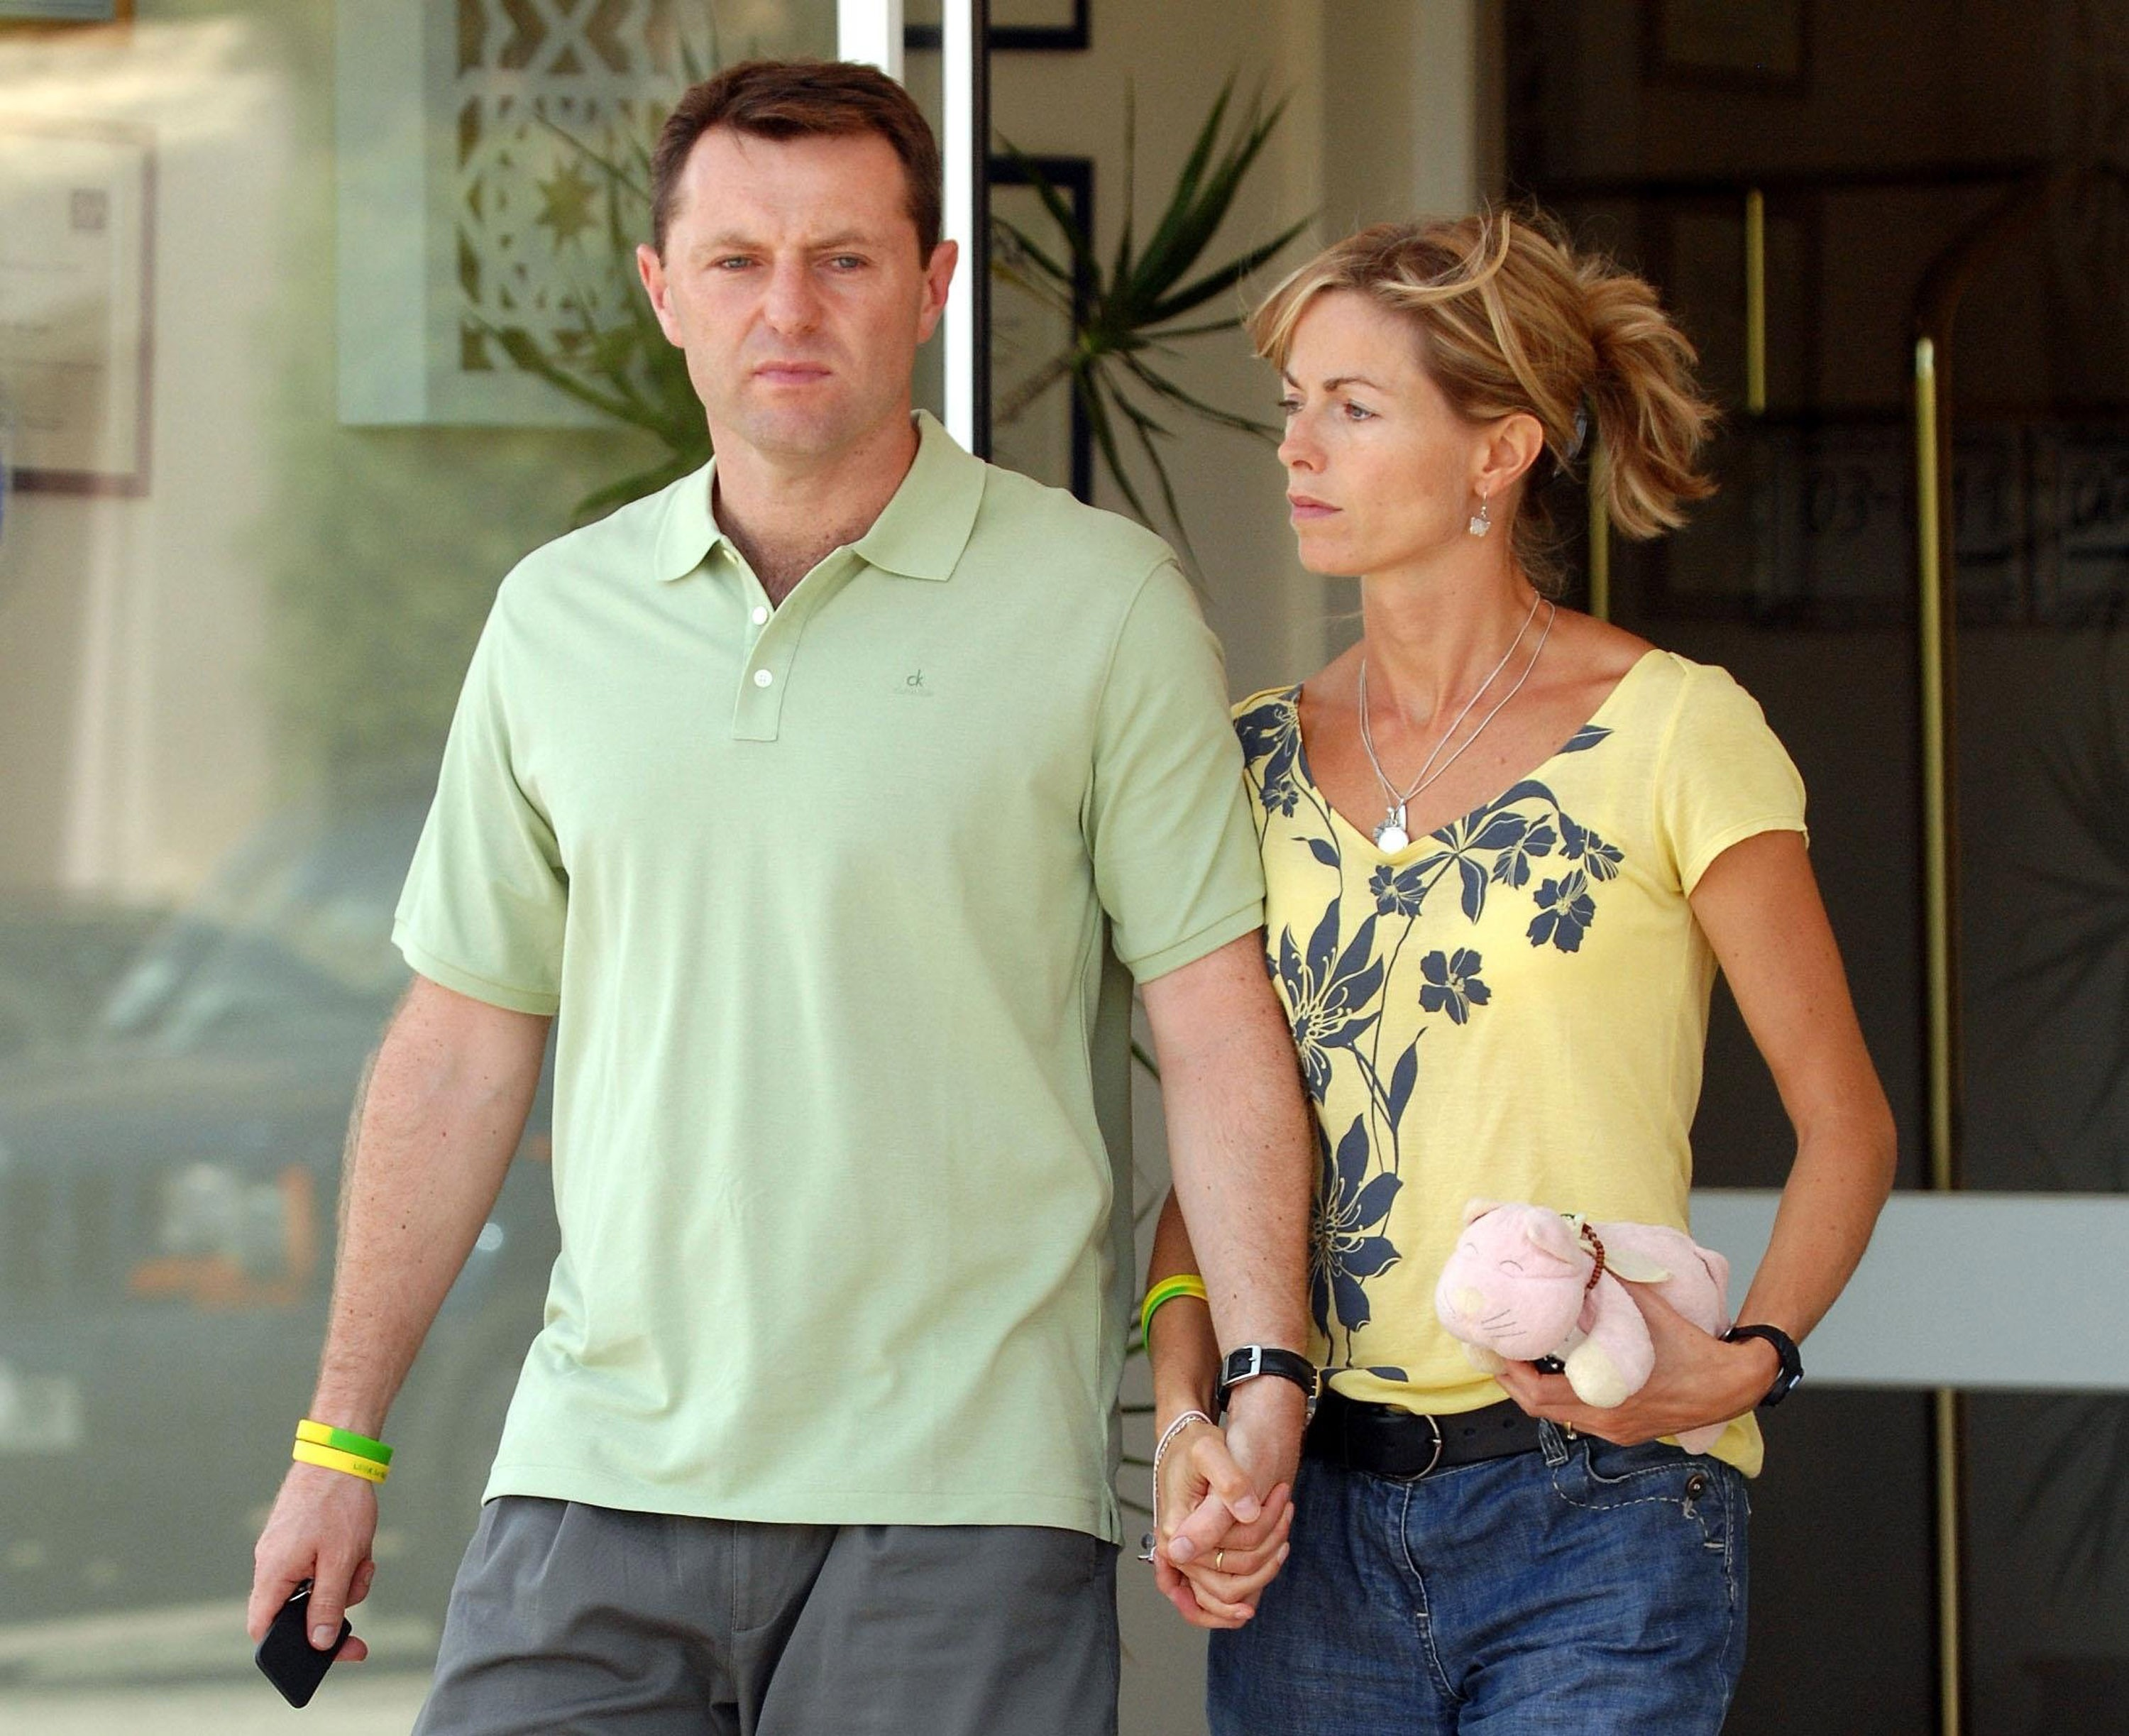 Gerry and Kate McCann, parents of missing Madeleine McCann, leave a hotel on route to an interview with television crews on August 9, 2007, in Praia da Luz, Algarve, Portugal. (Getty)